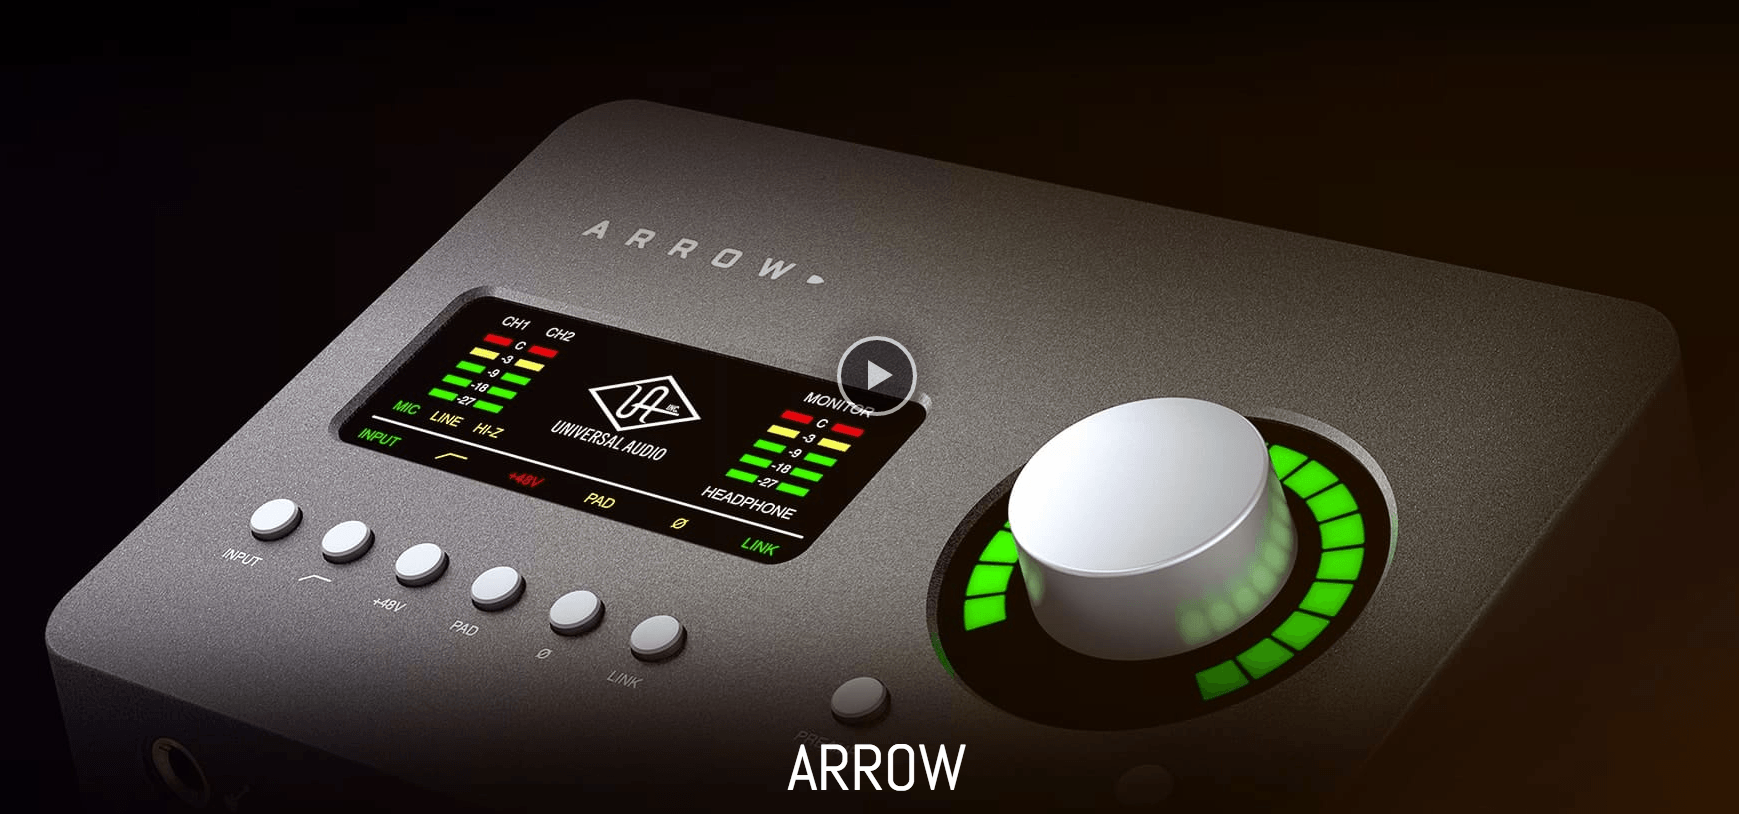 Universal Audio Ships Arrow Desktop Audio Interface For Music Creators